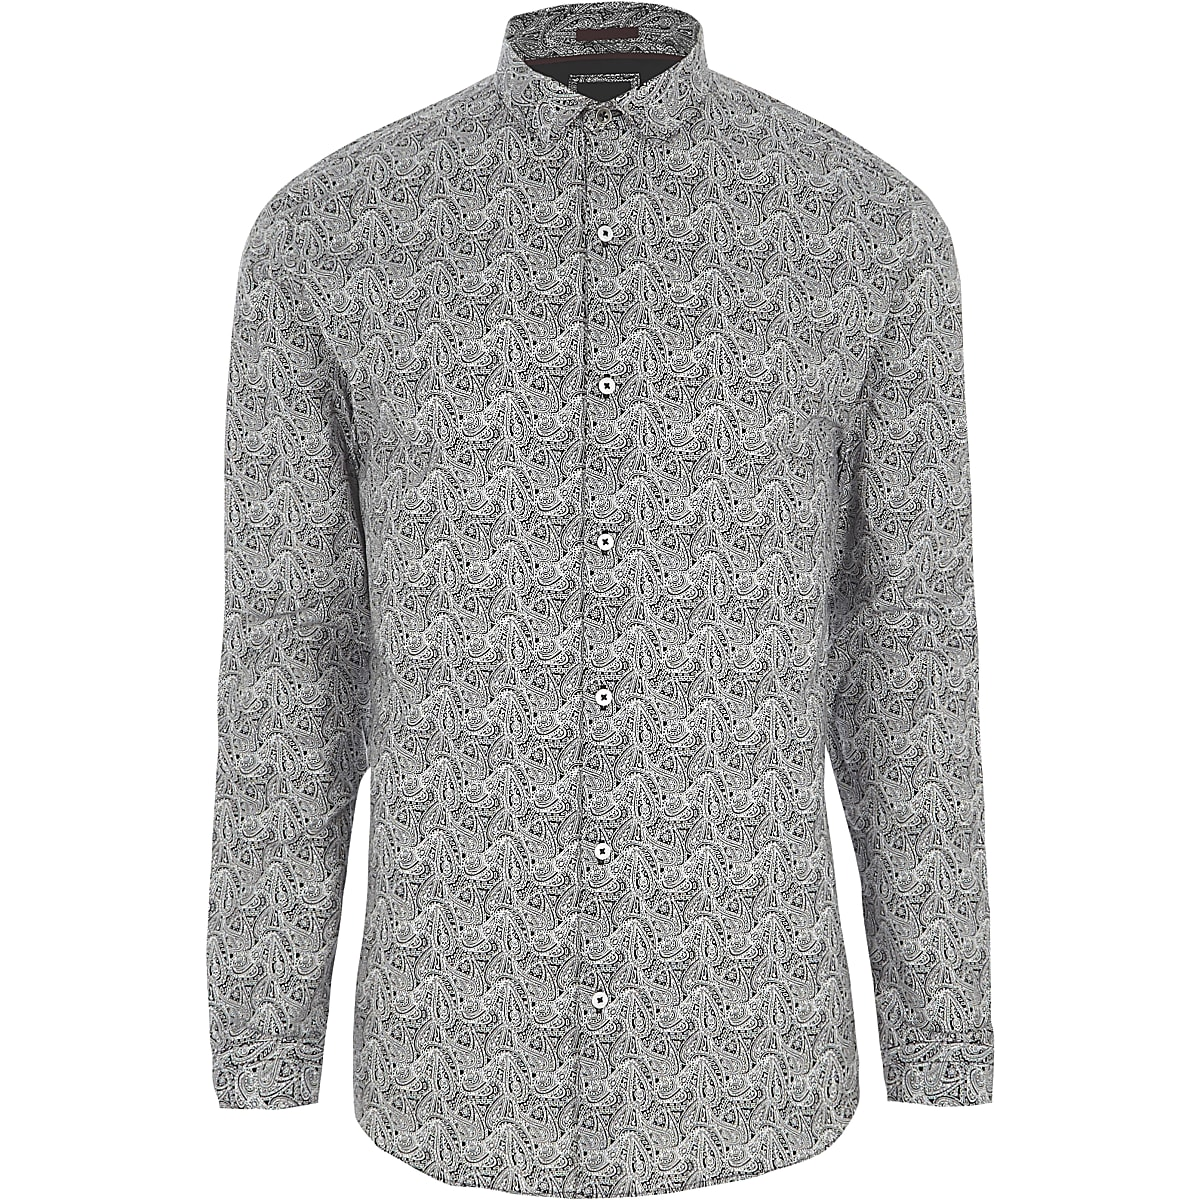 Grey paisley print muscle fit shirt